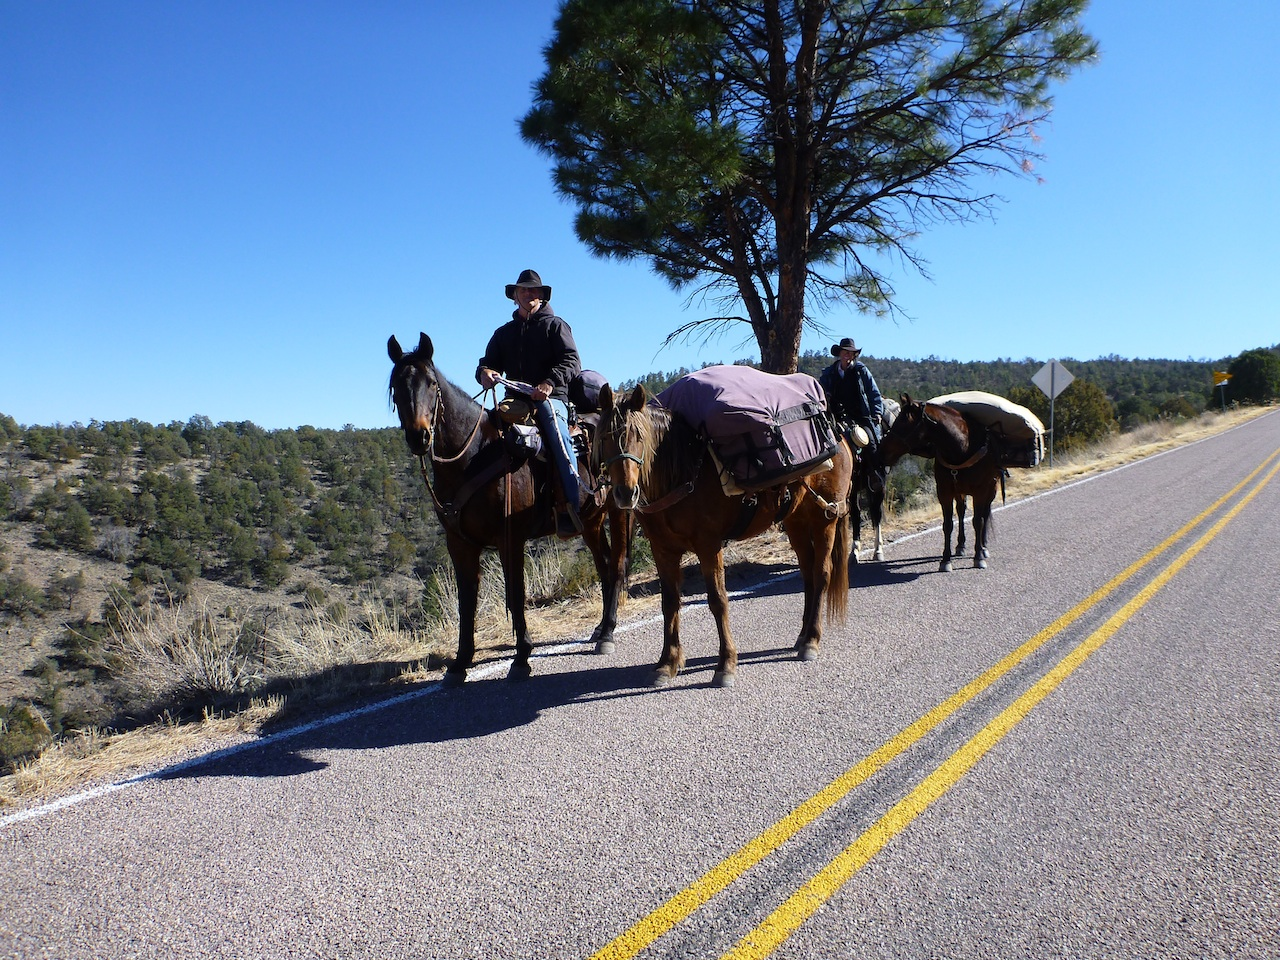 Horse Back Riding And Camping In The Gila National Forest.